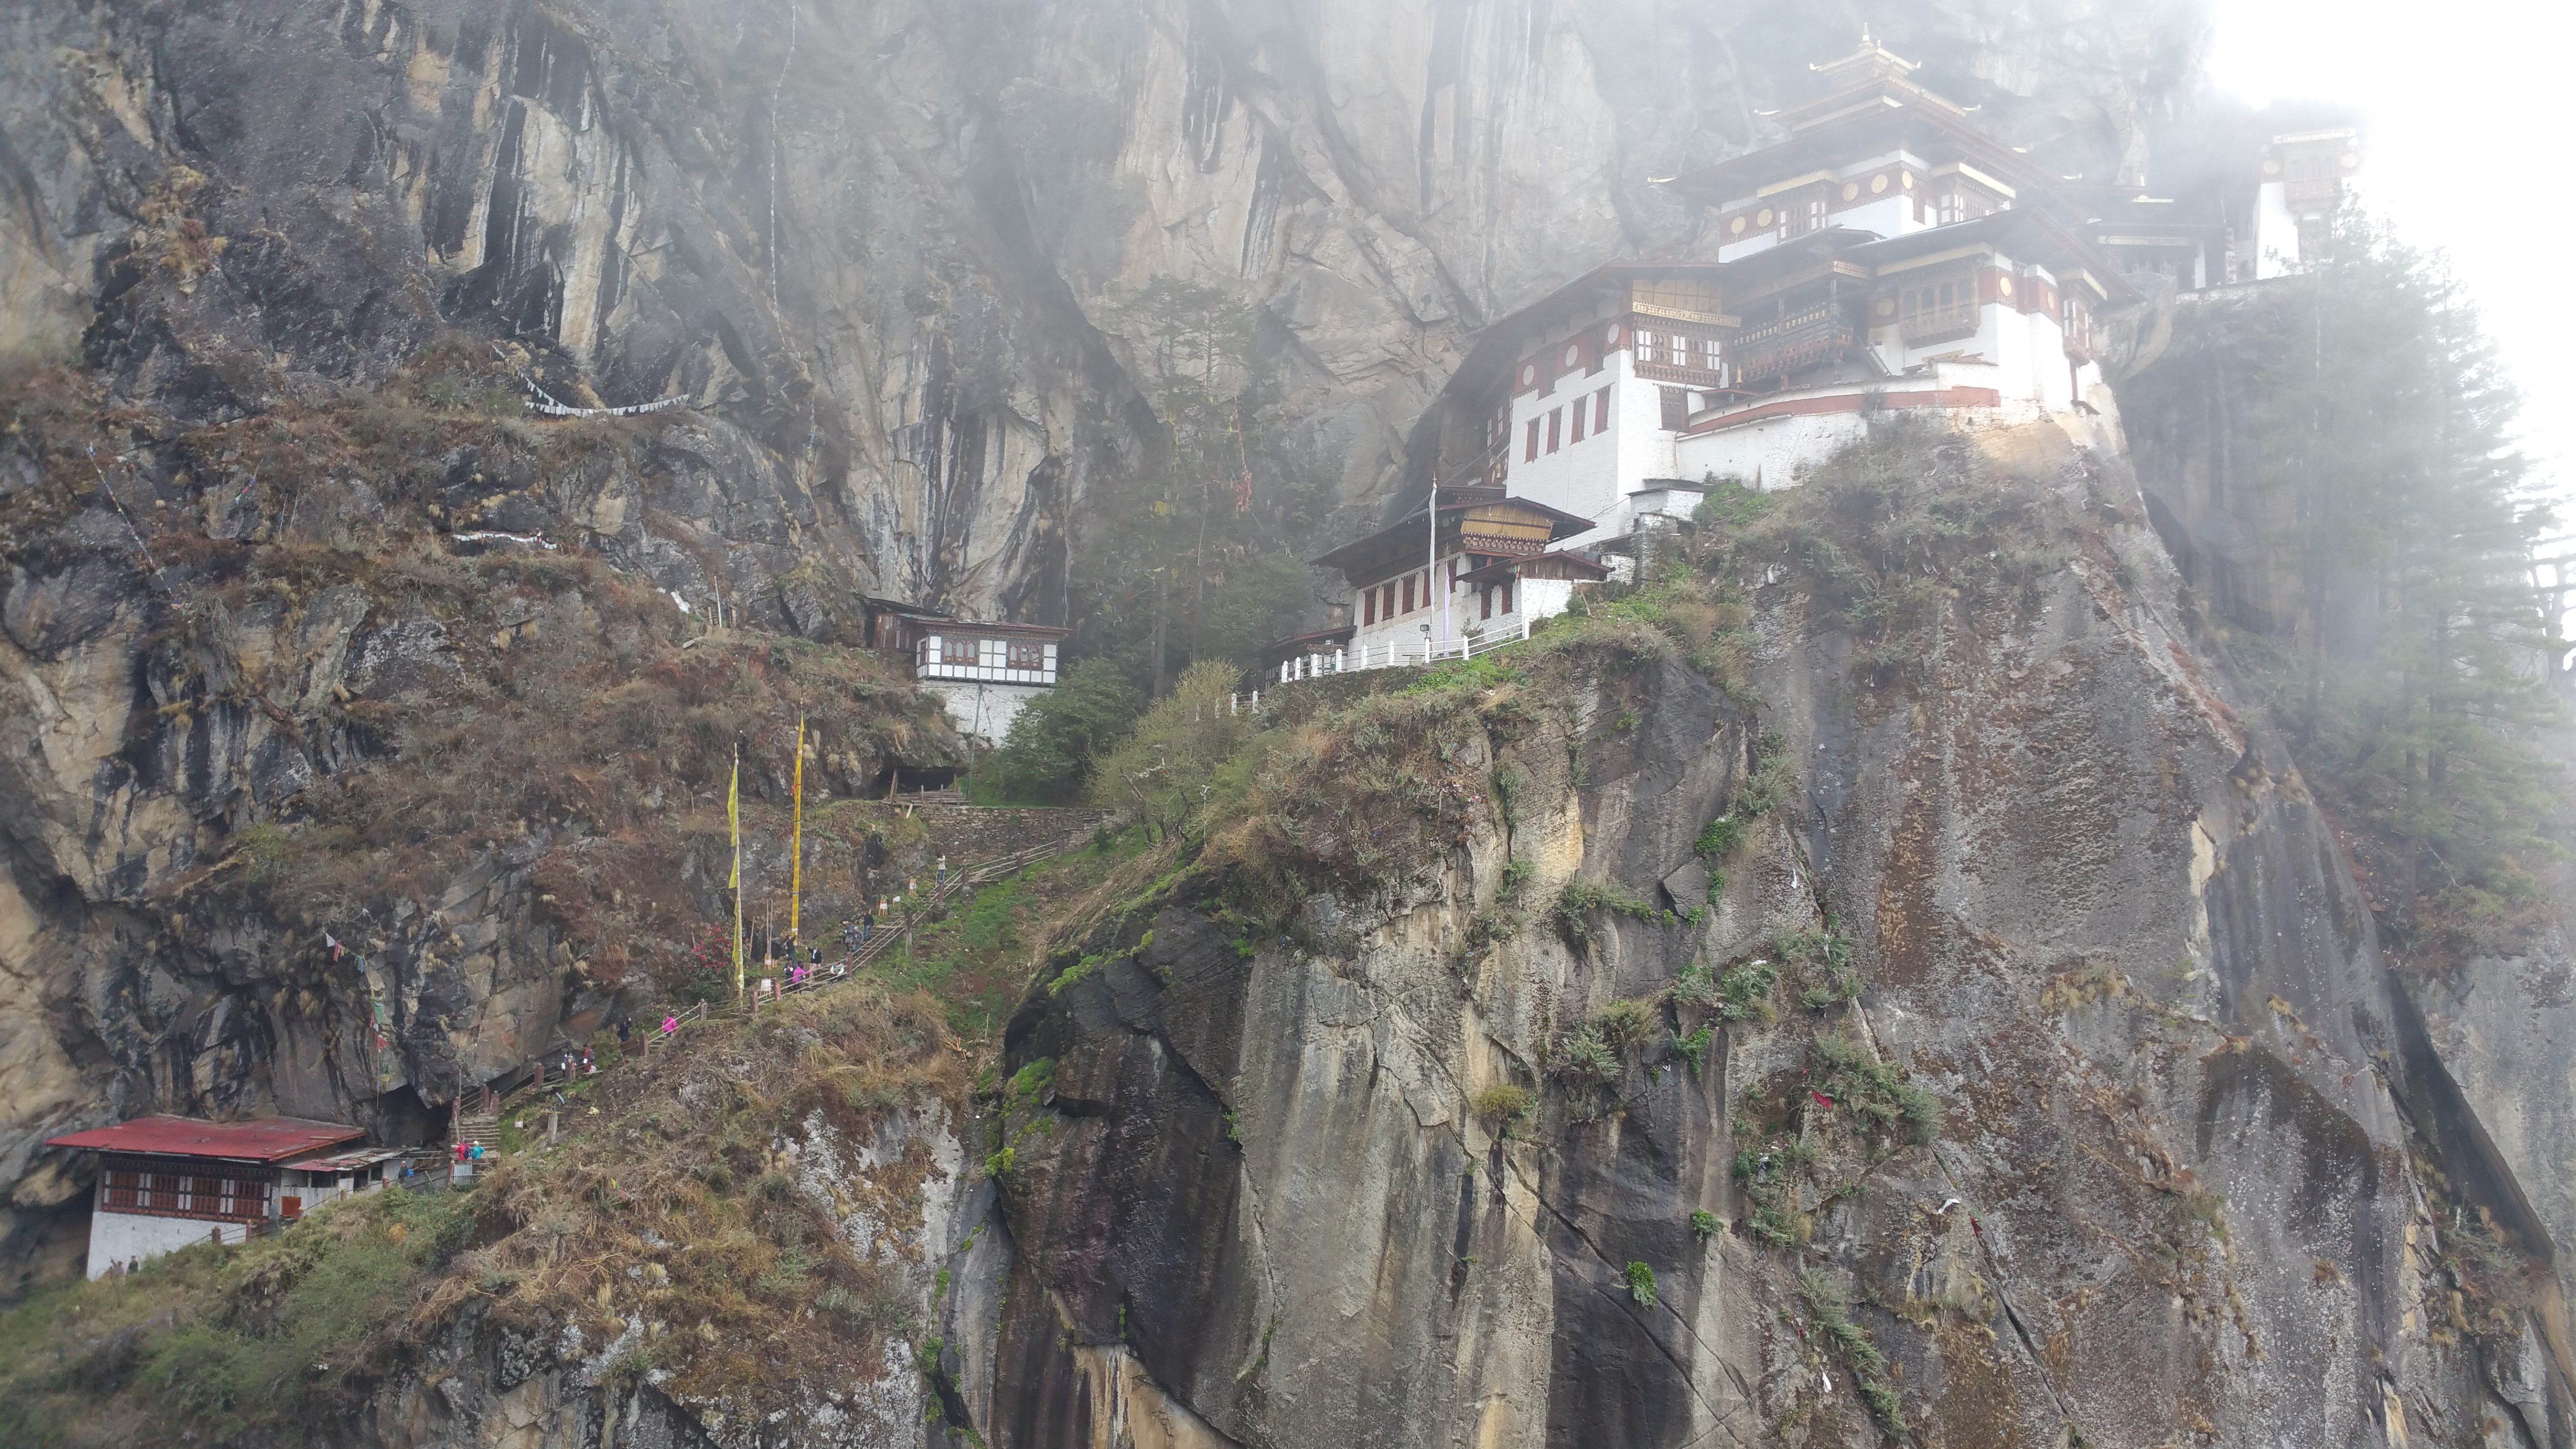 The Tiger's Nest in Paro, Bhutan